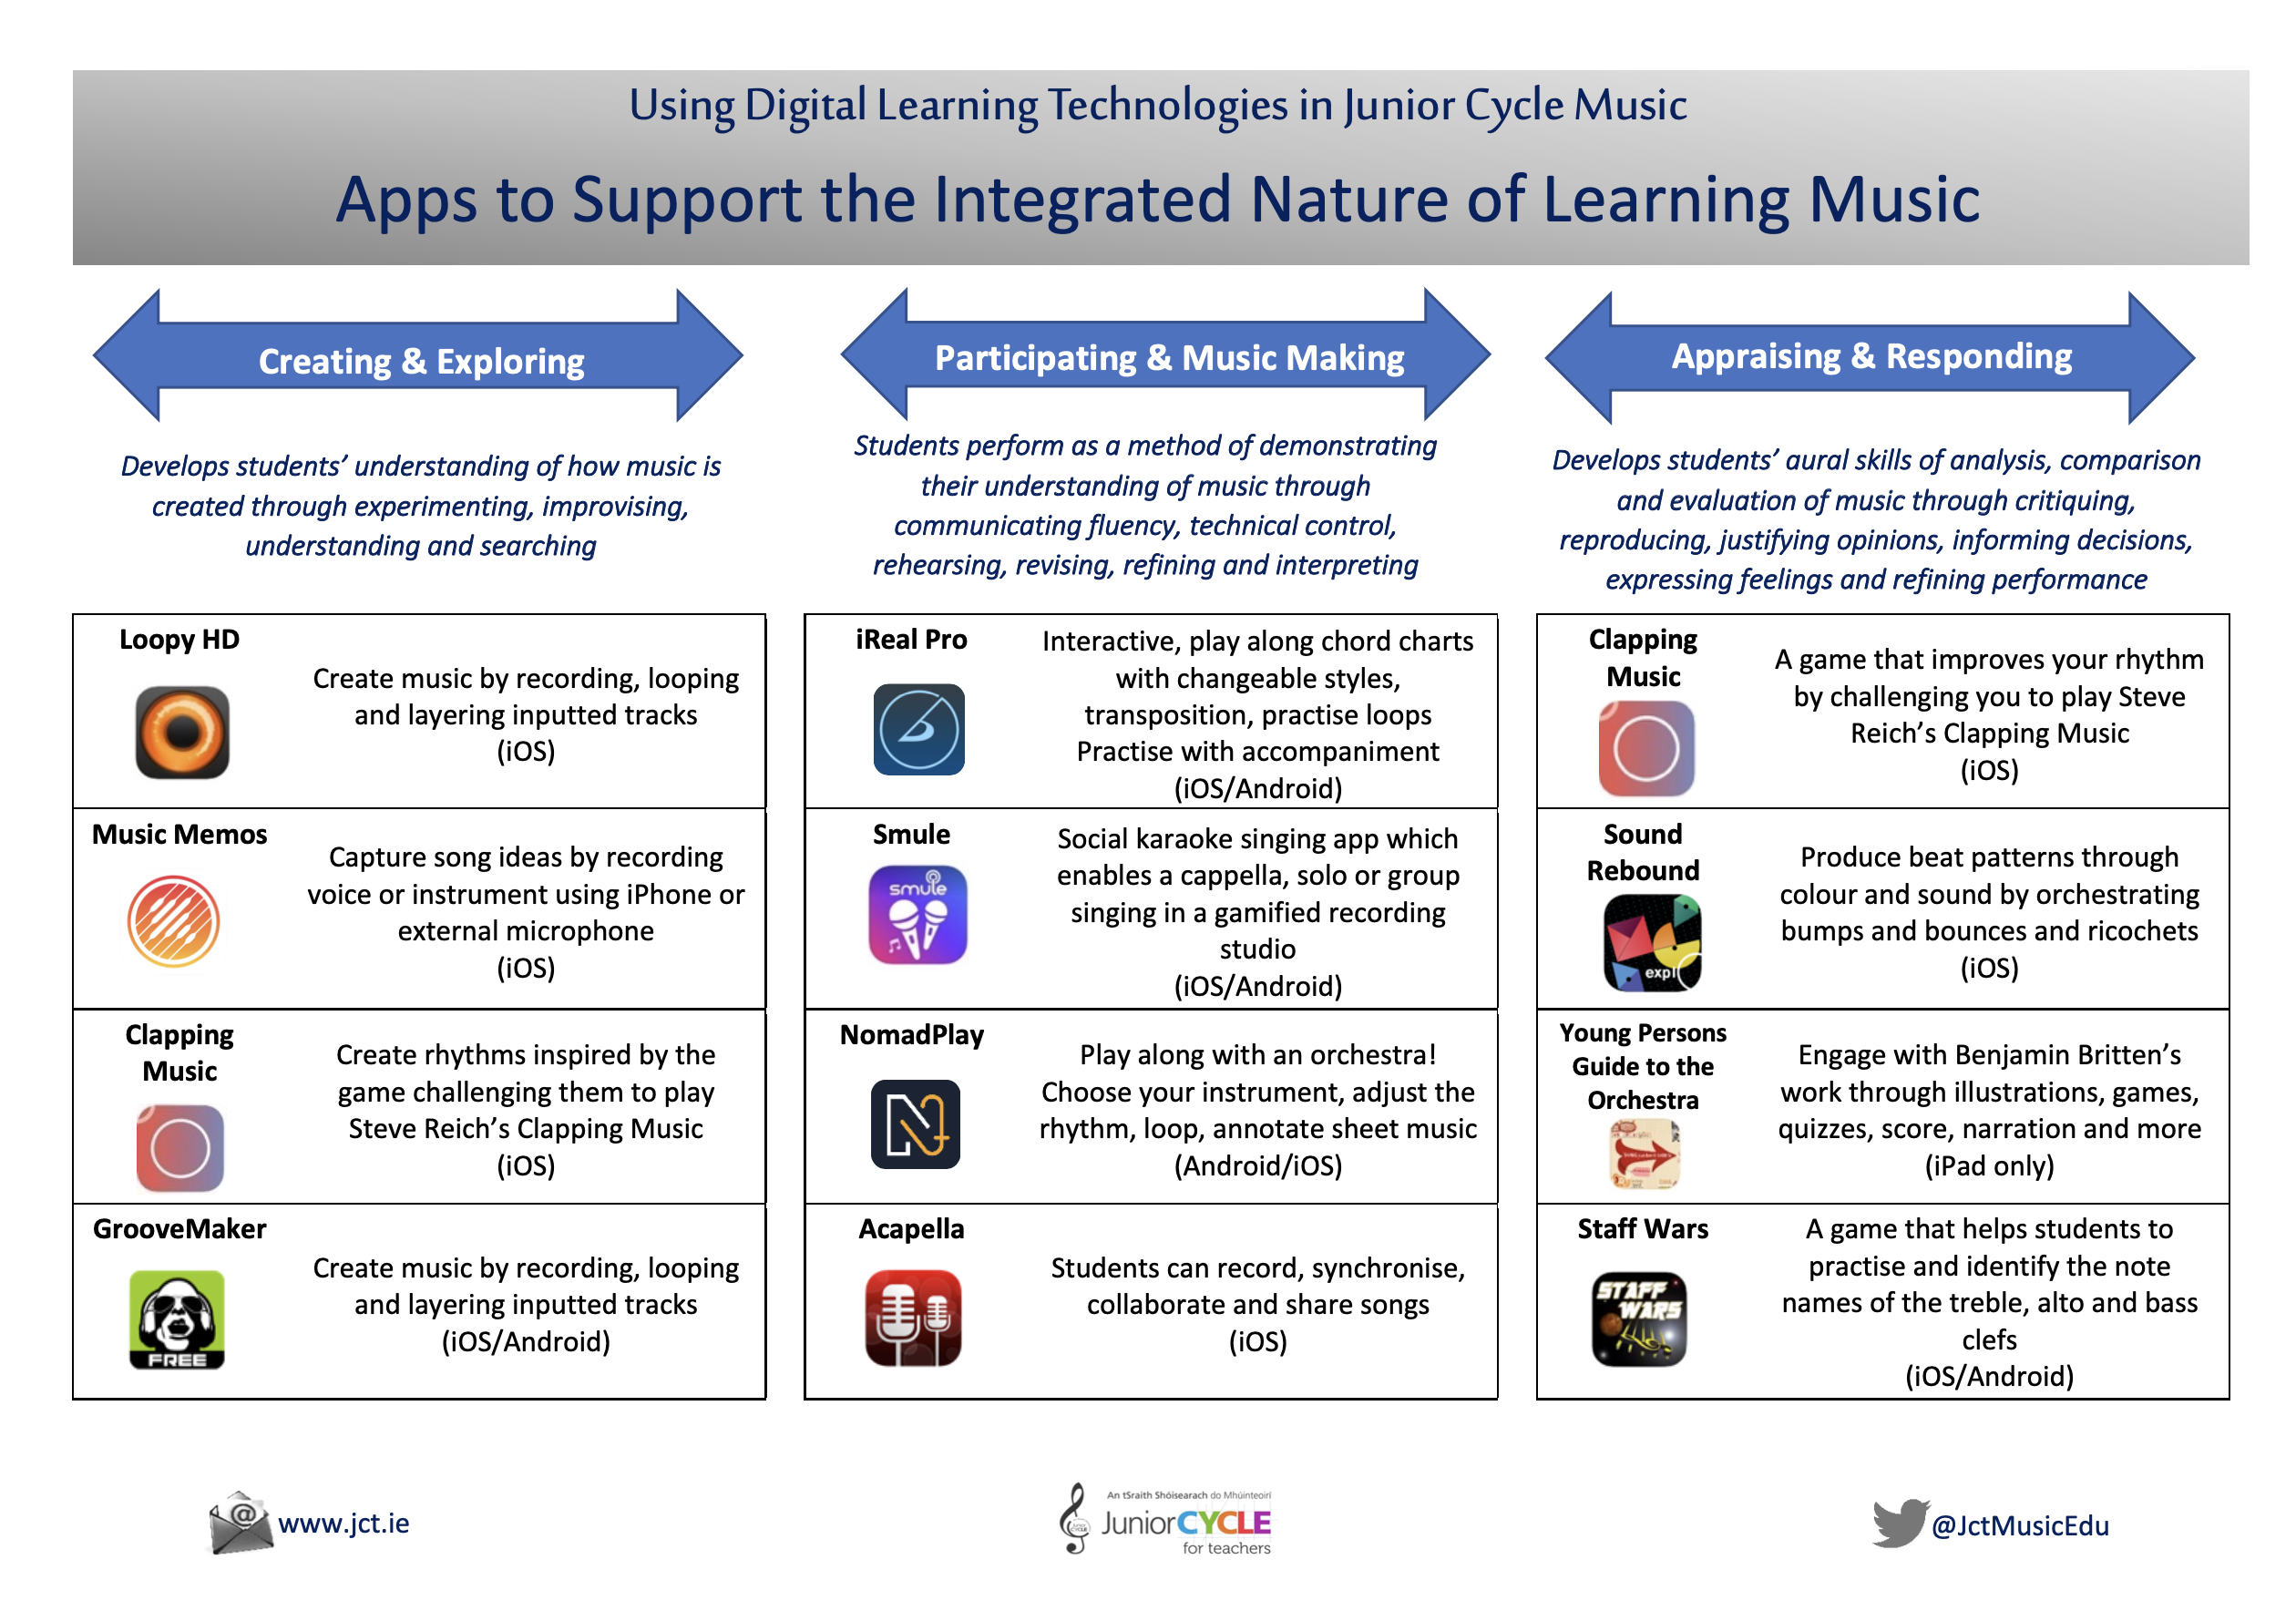 Apps to Support the Integrated Nature of Learning